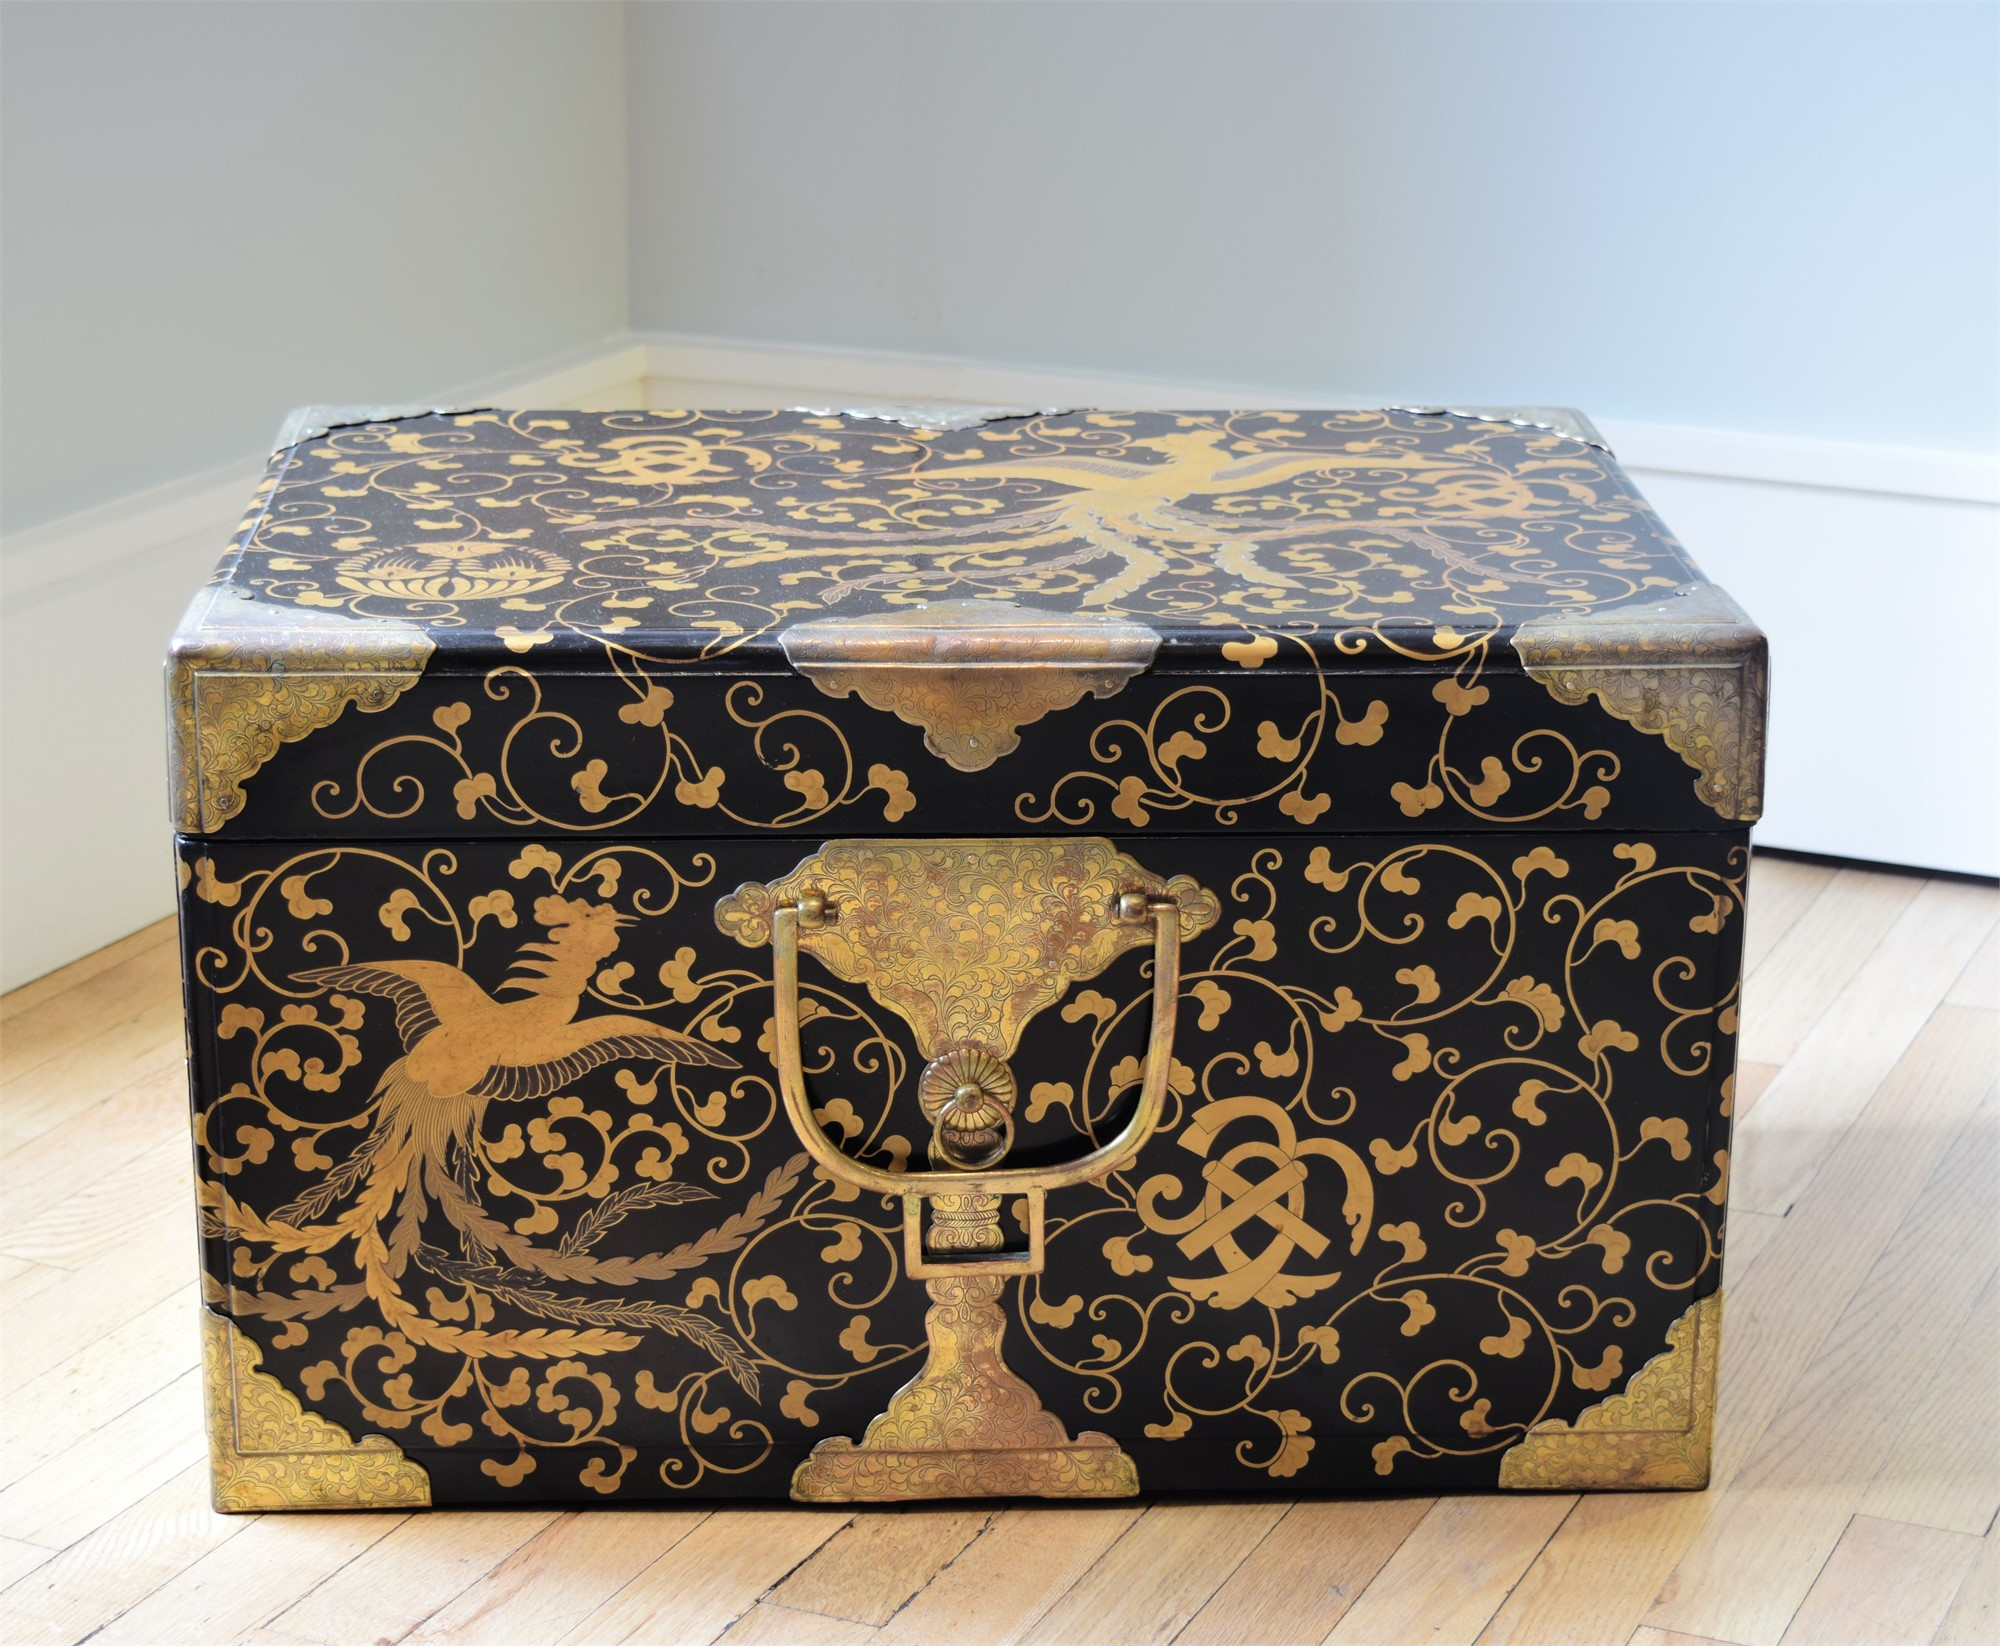 BLACK AND GOLD LACQUER STORAGE CHEST WITH ETCHED BRASS MOUNTS